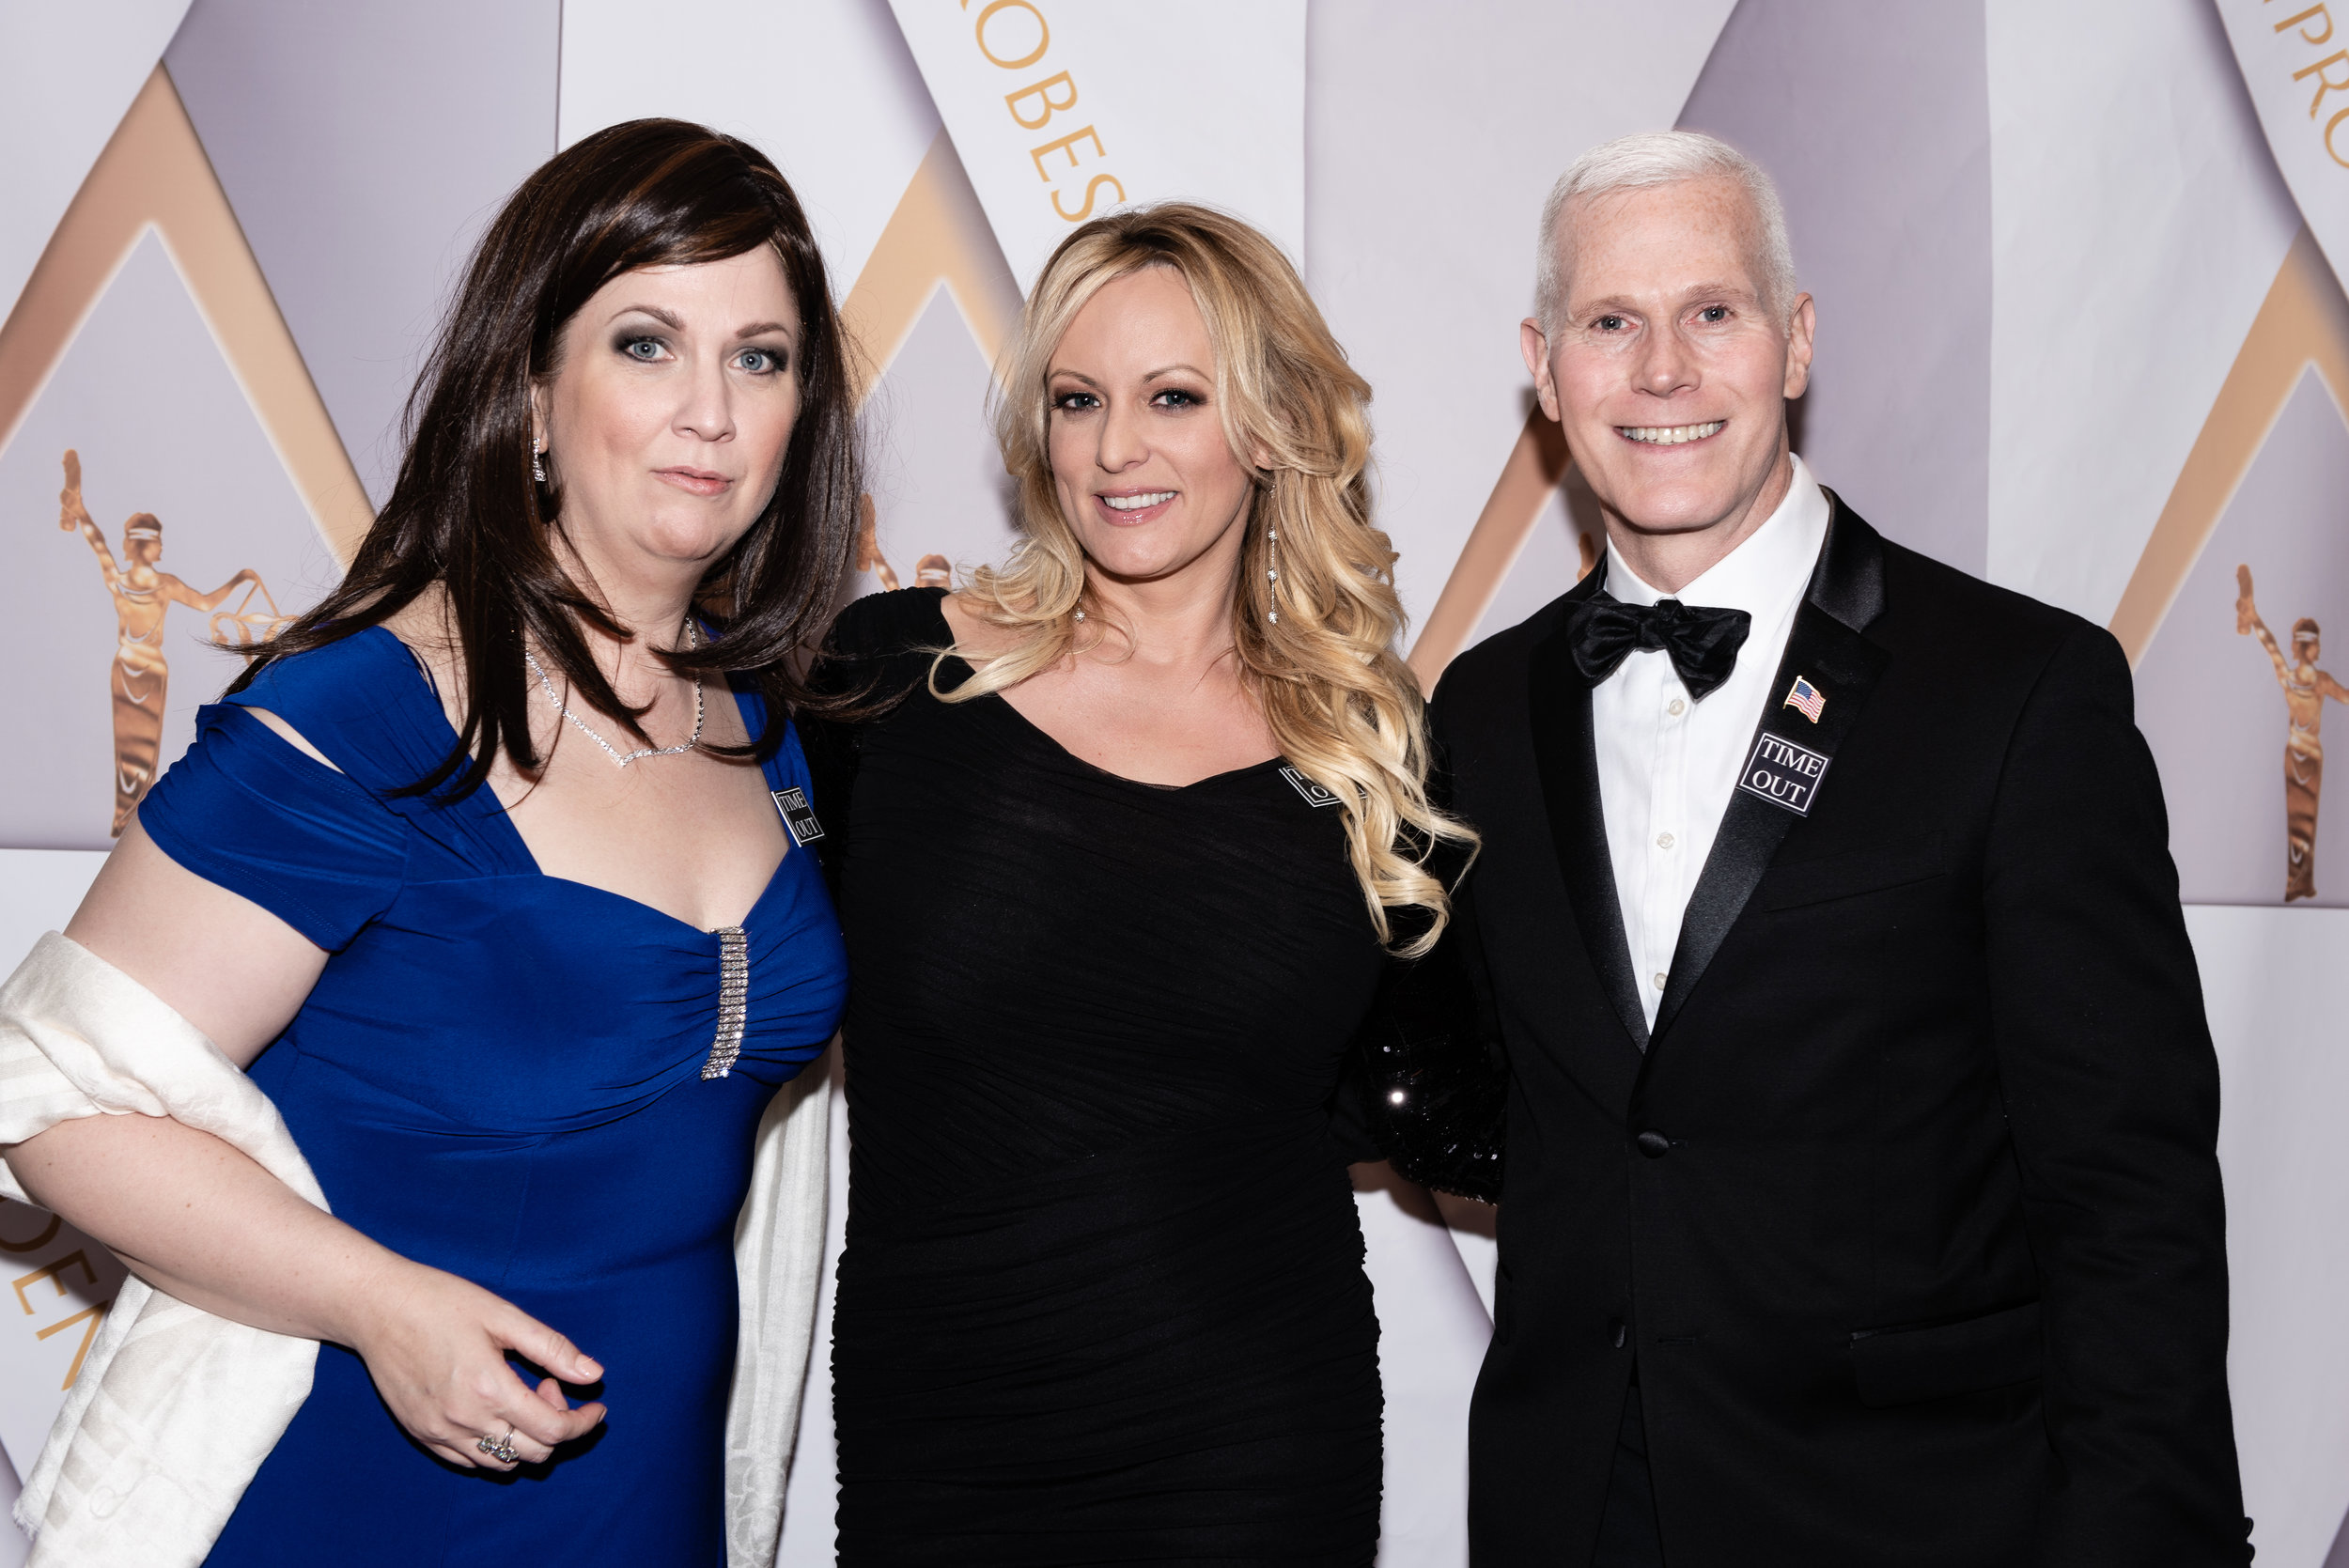 Sharon Spell as Sarah Suckabee Sanders, Stormy Daniels, Mike Hot-Pence